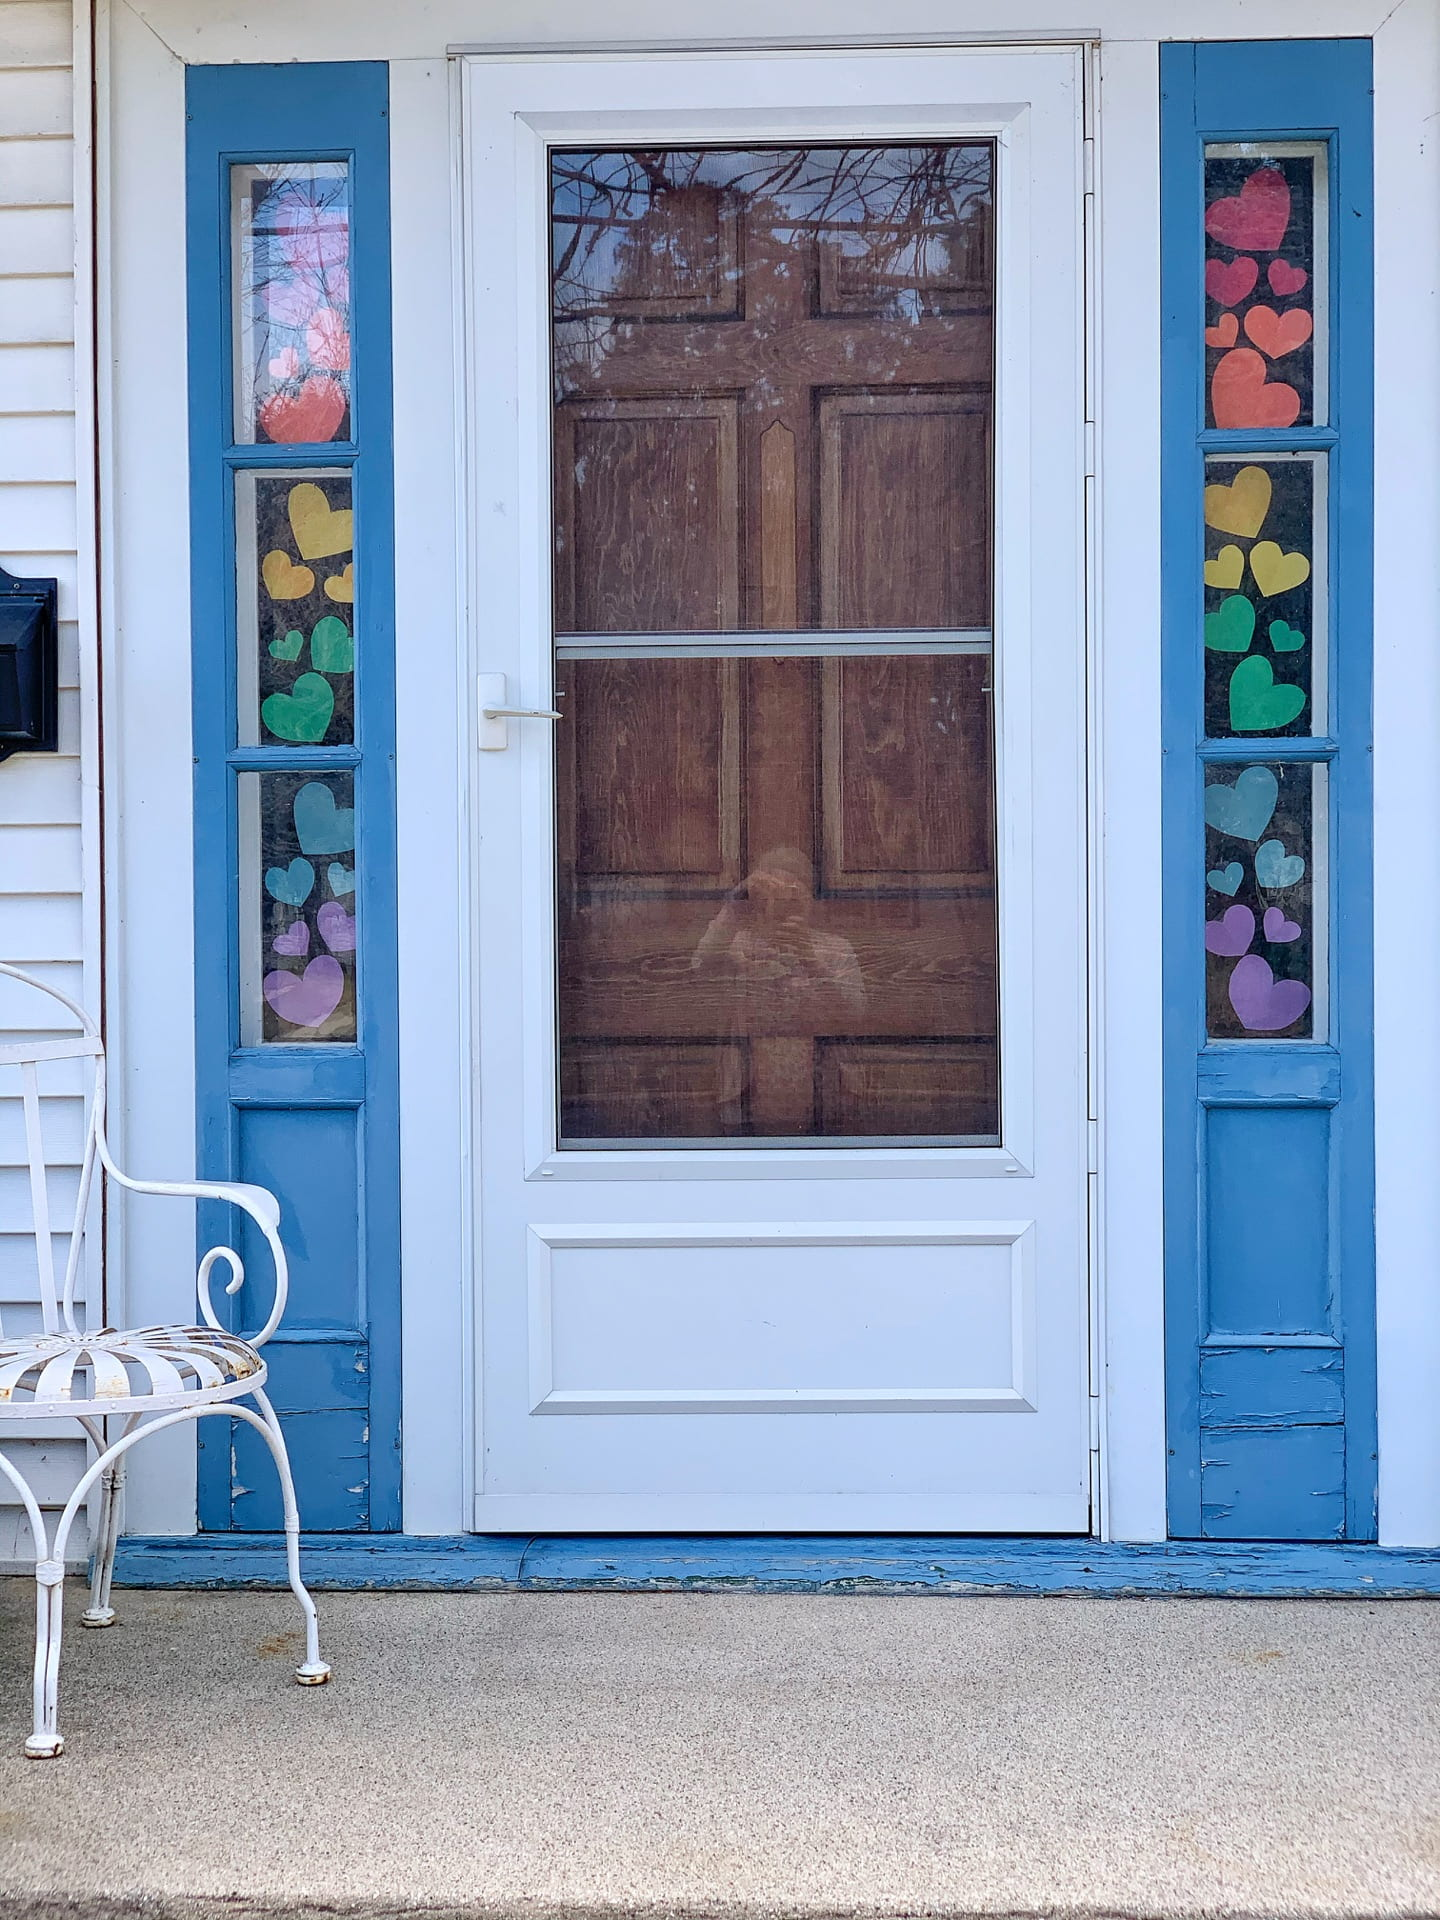 Front door with colorful paper hearts taped to the side-light windows.